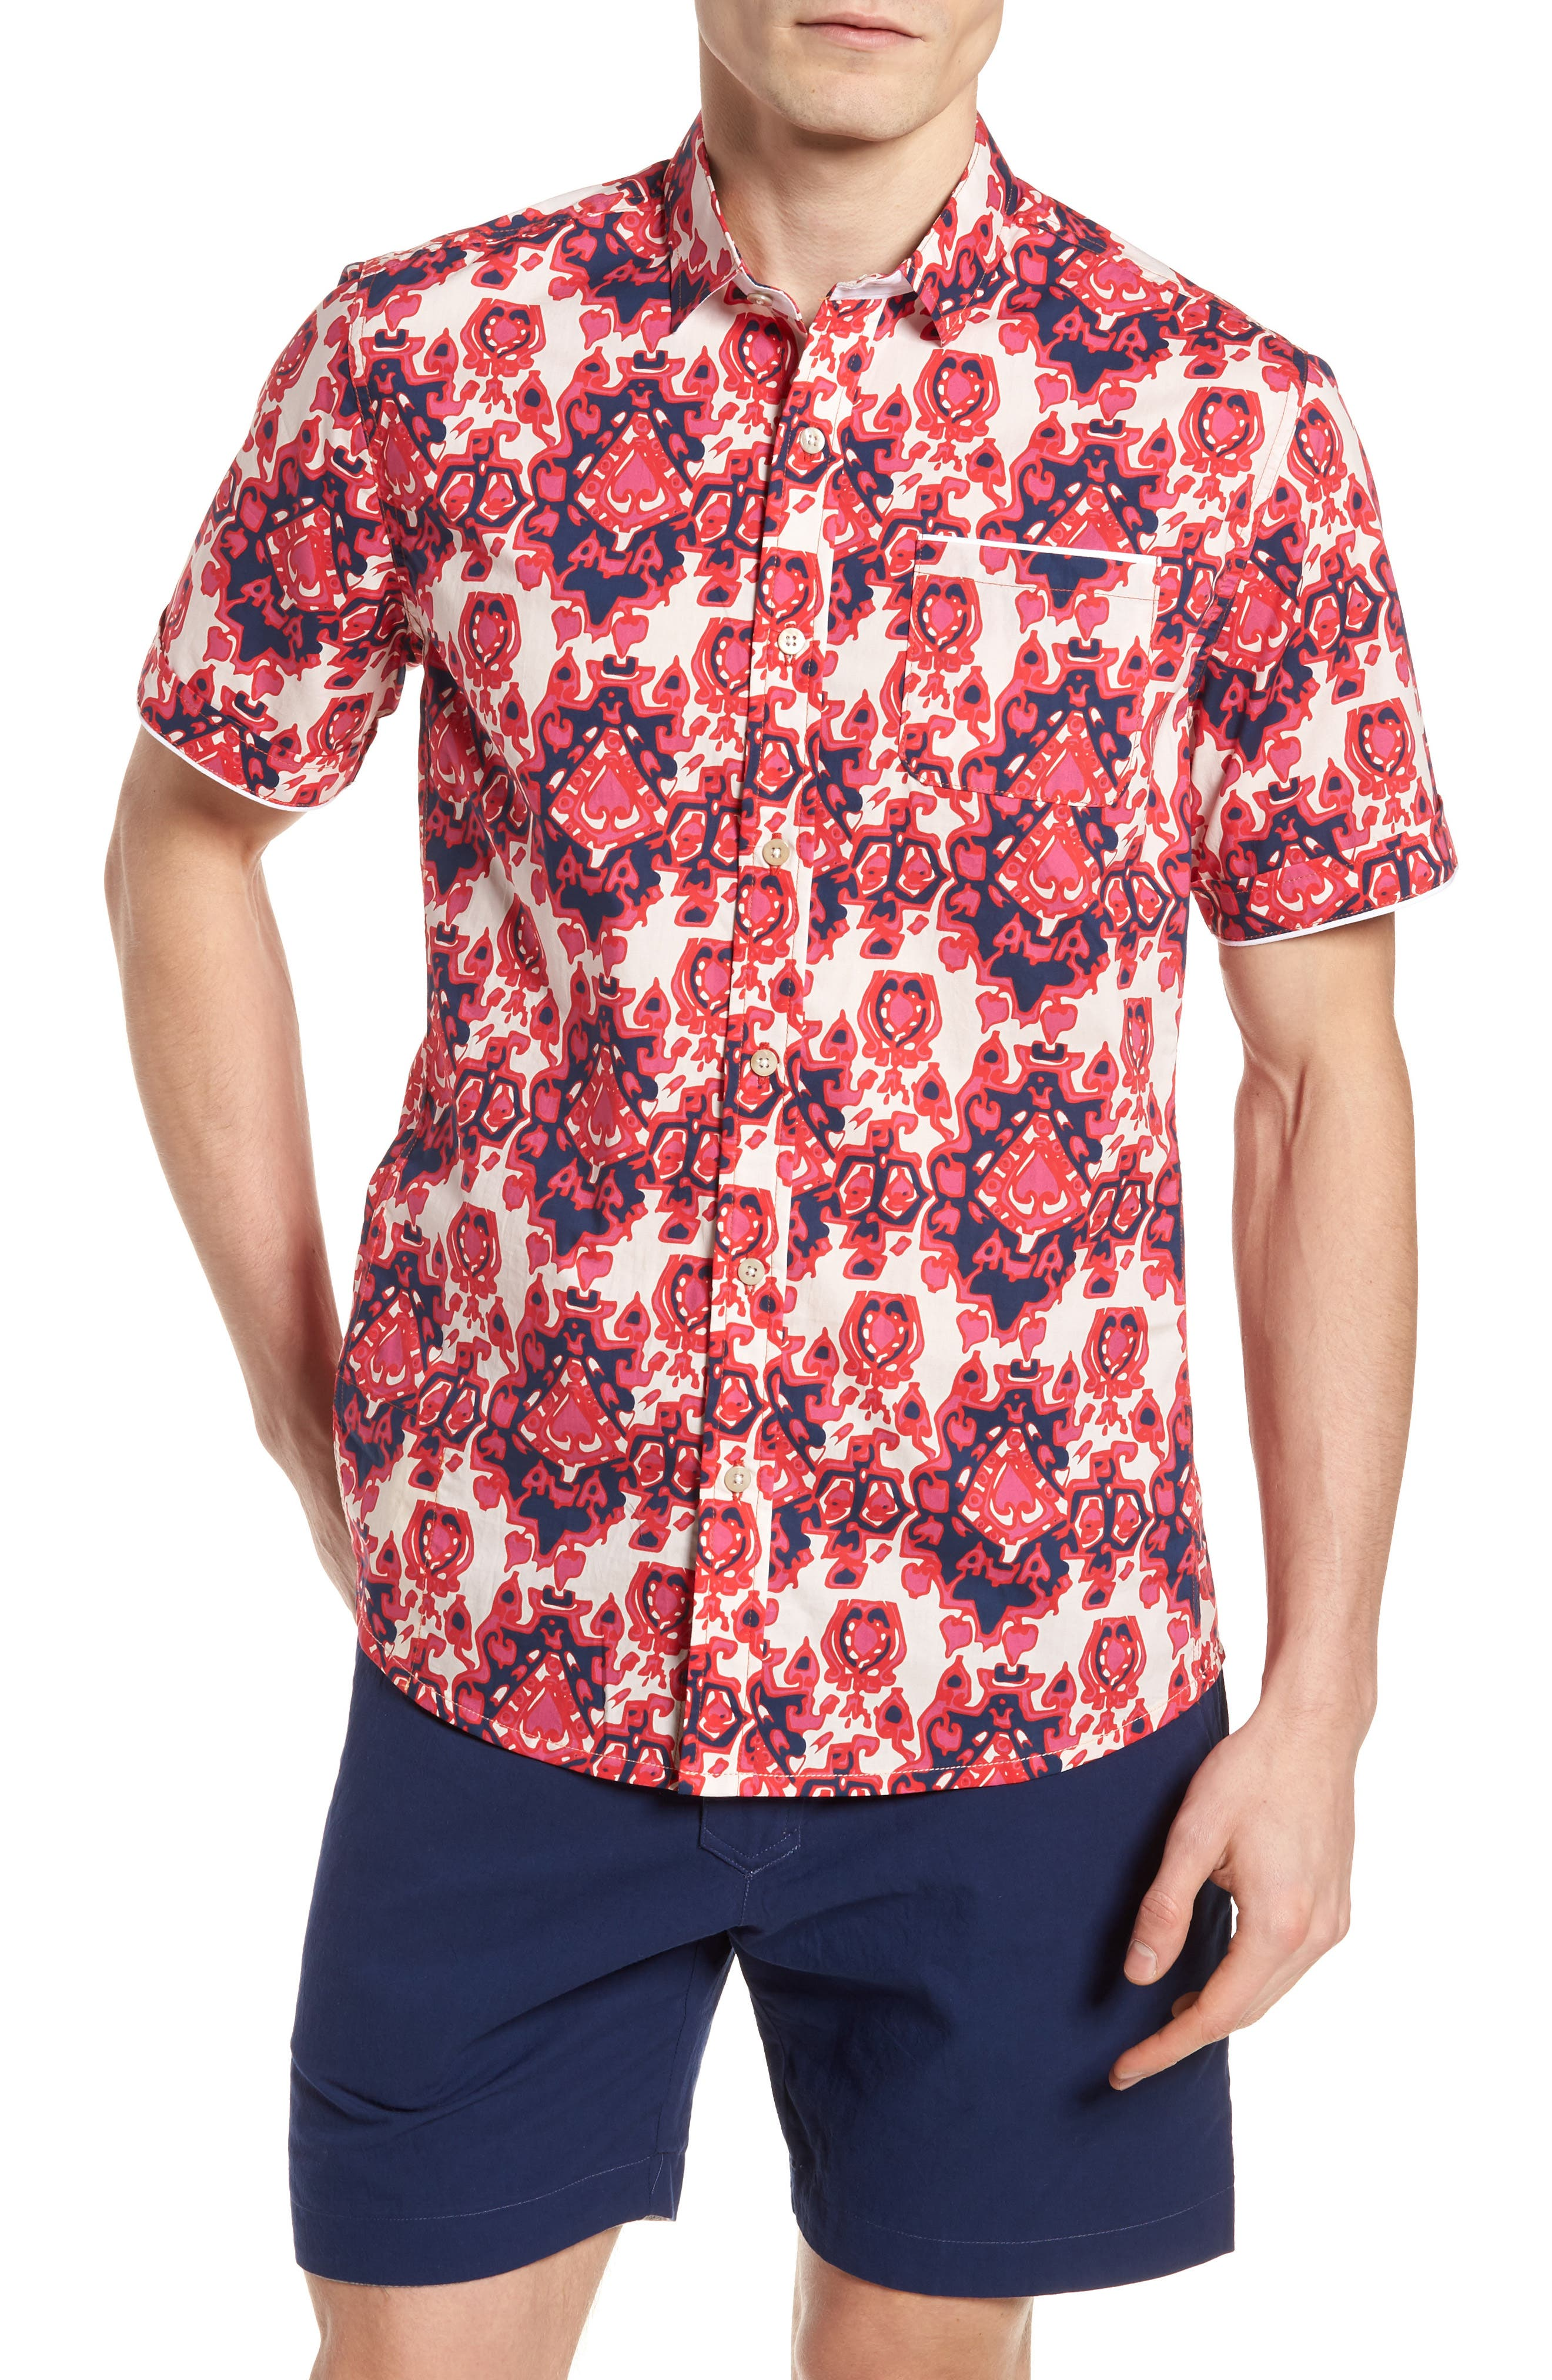 Abstract Culture Woven Shirt,                             Main thumbnail 1, color,                             Punch Red